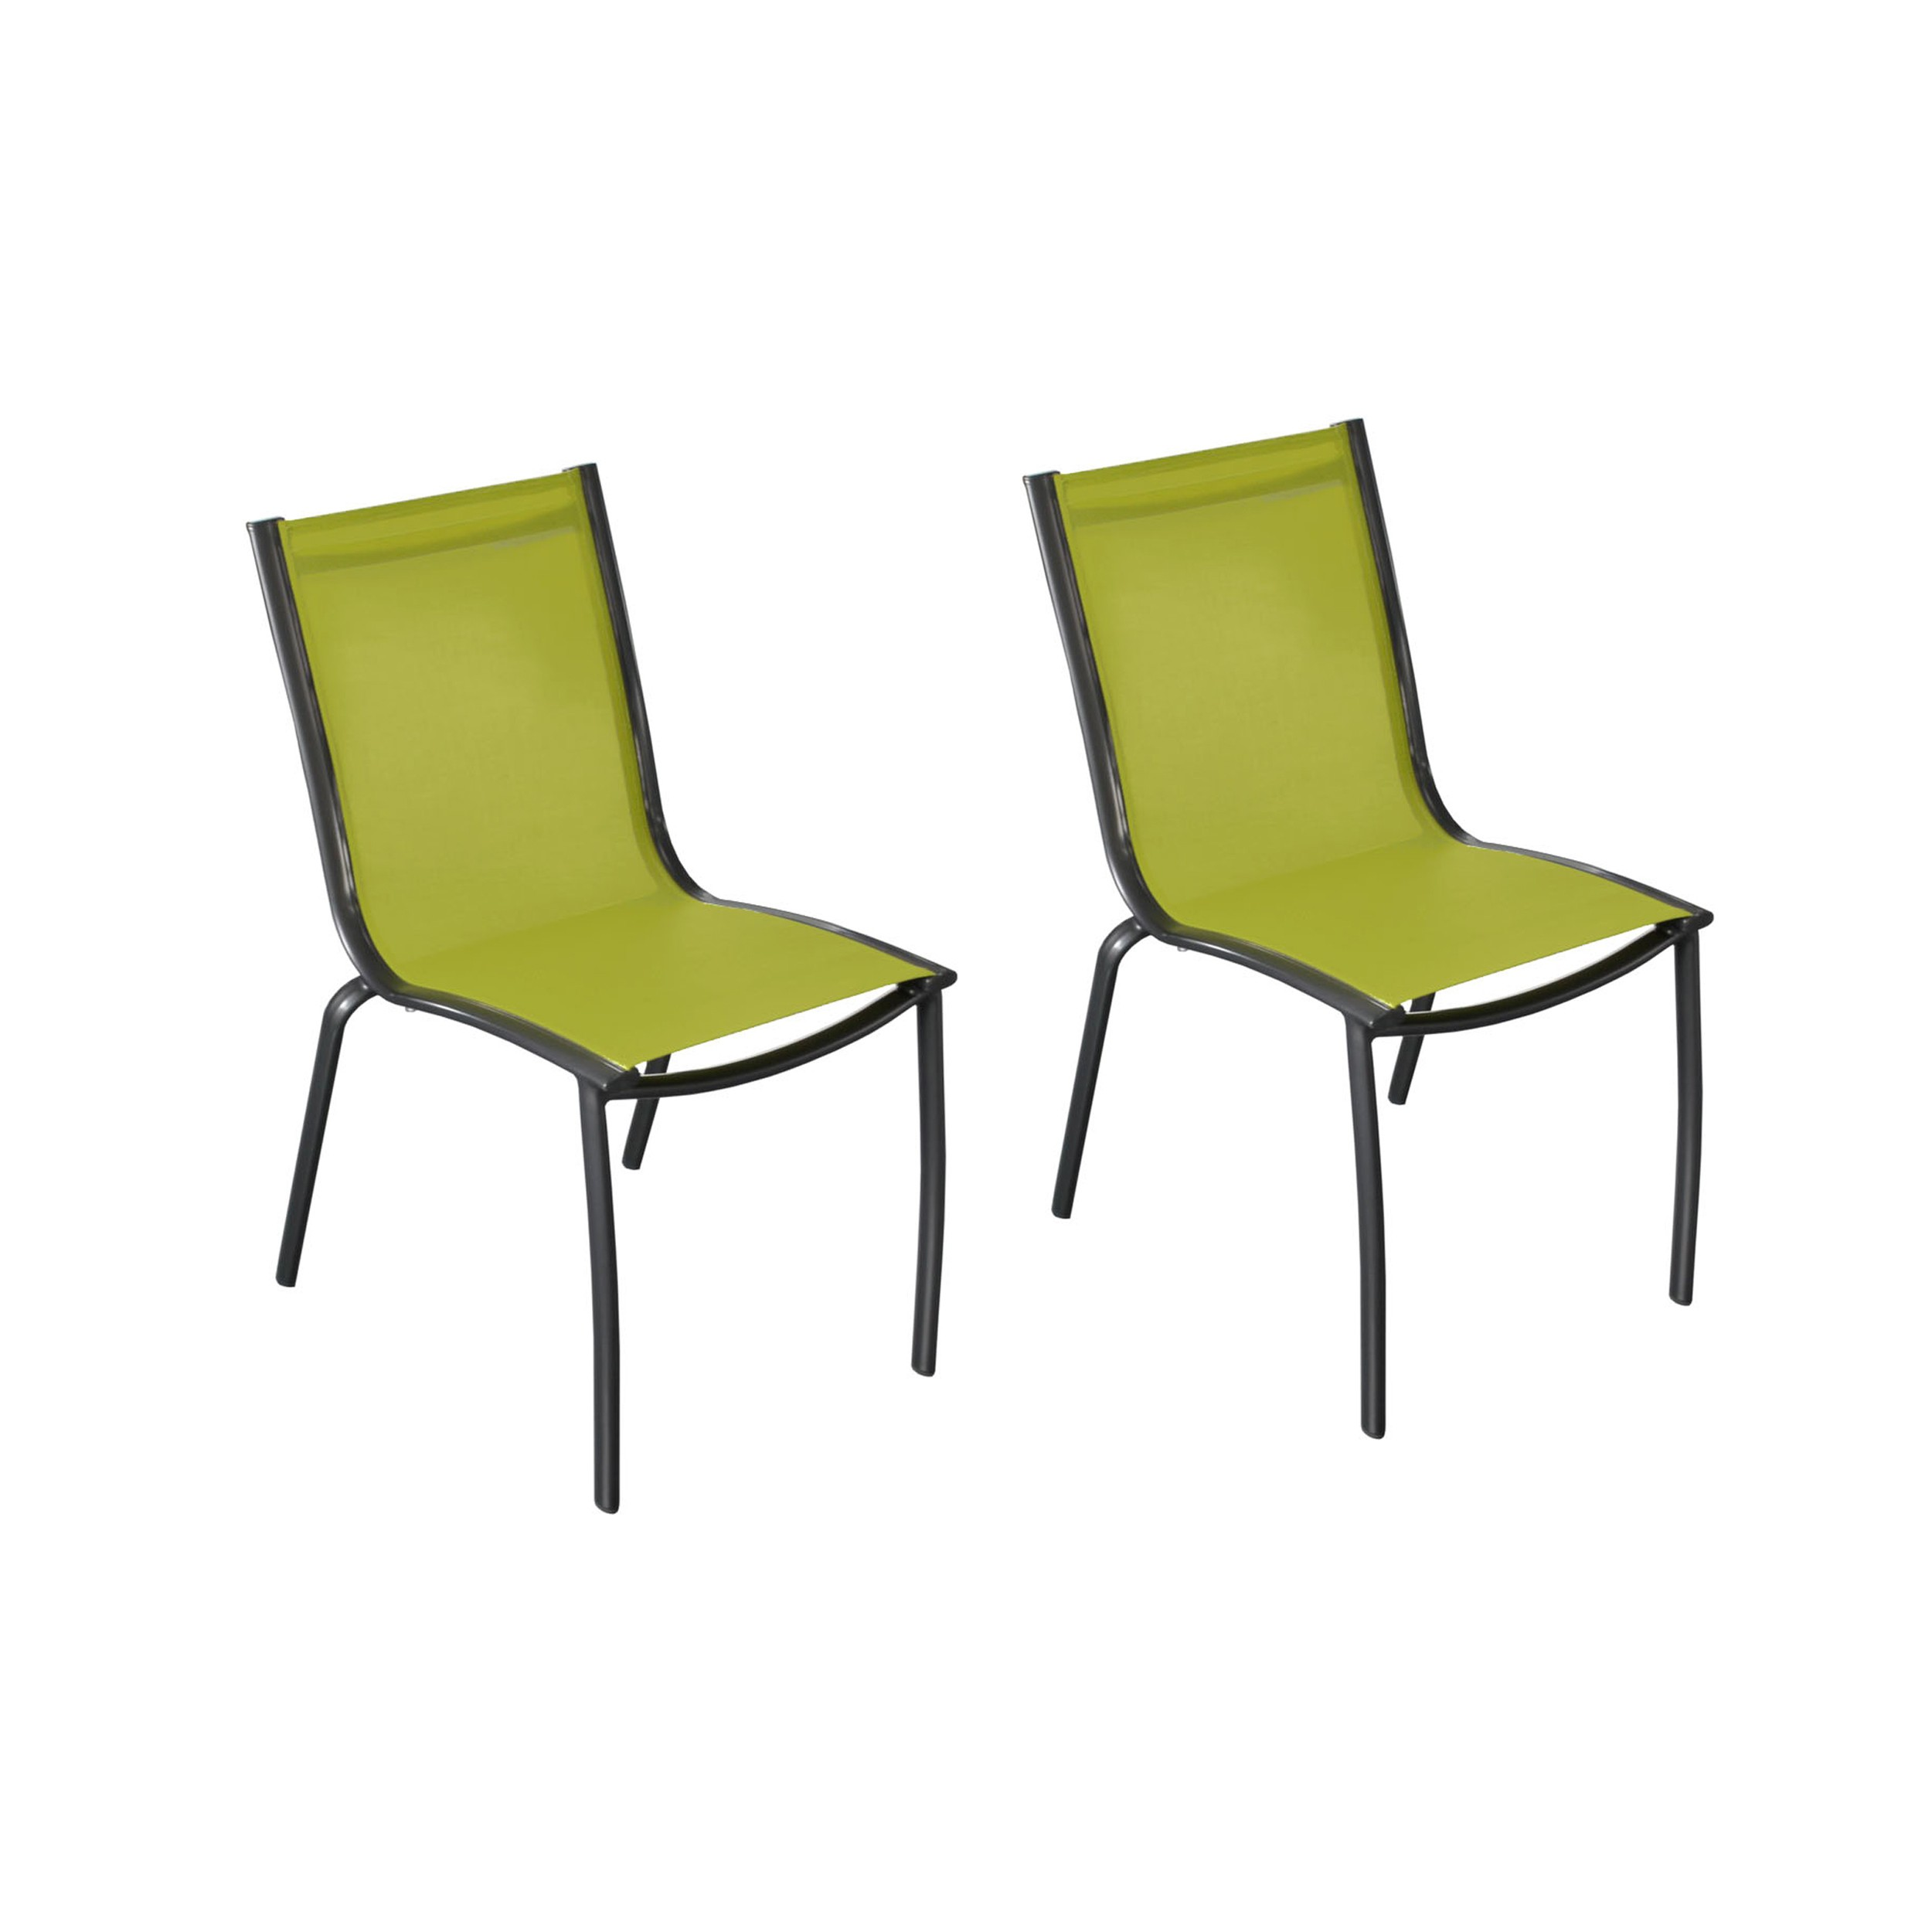 chaise de jardin santa rosa vert anis lot de2 choisissez nos chaises de jardin santa rosa. Black Bedroom Furniture Sets. Home Design Ideas